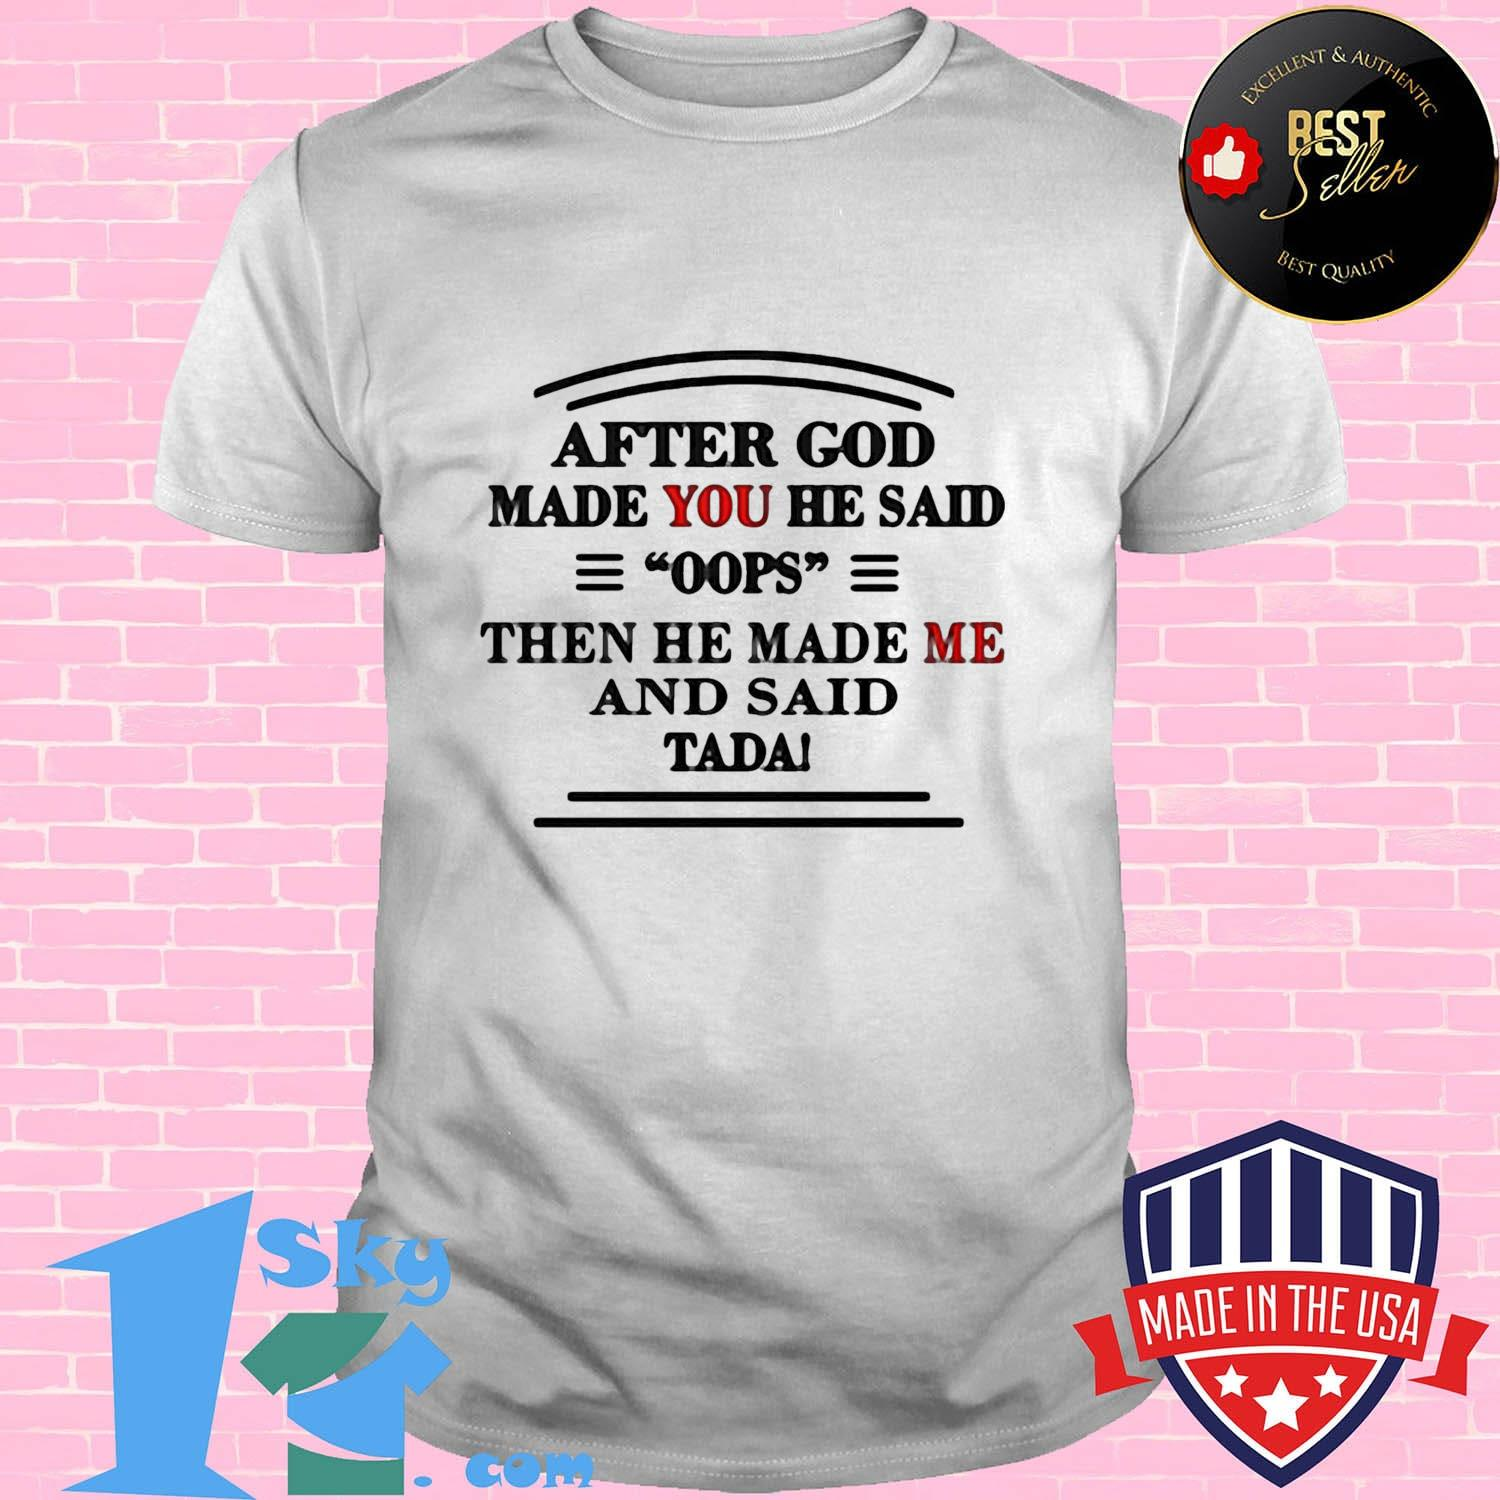 e17a98af after god made you he said oops then he made me and said tada shirt unisex - Shop trending - We offer all trend shirts - 1SkyTee